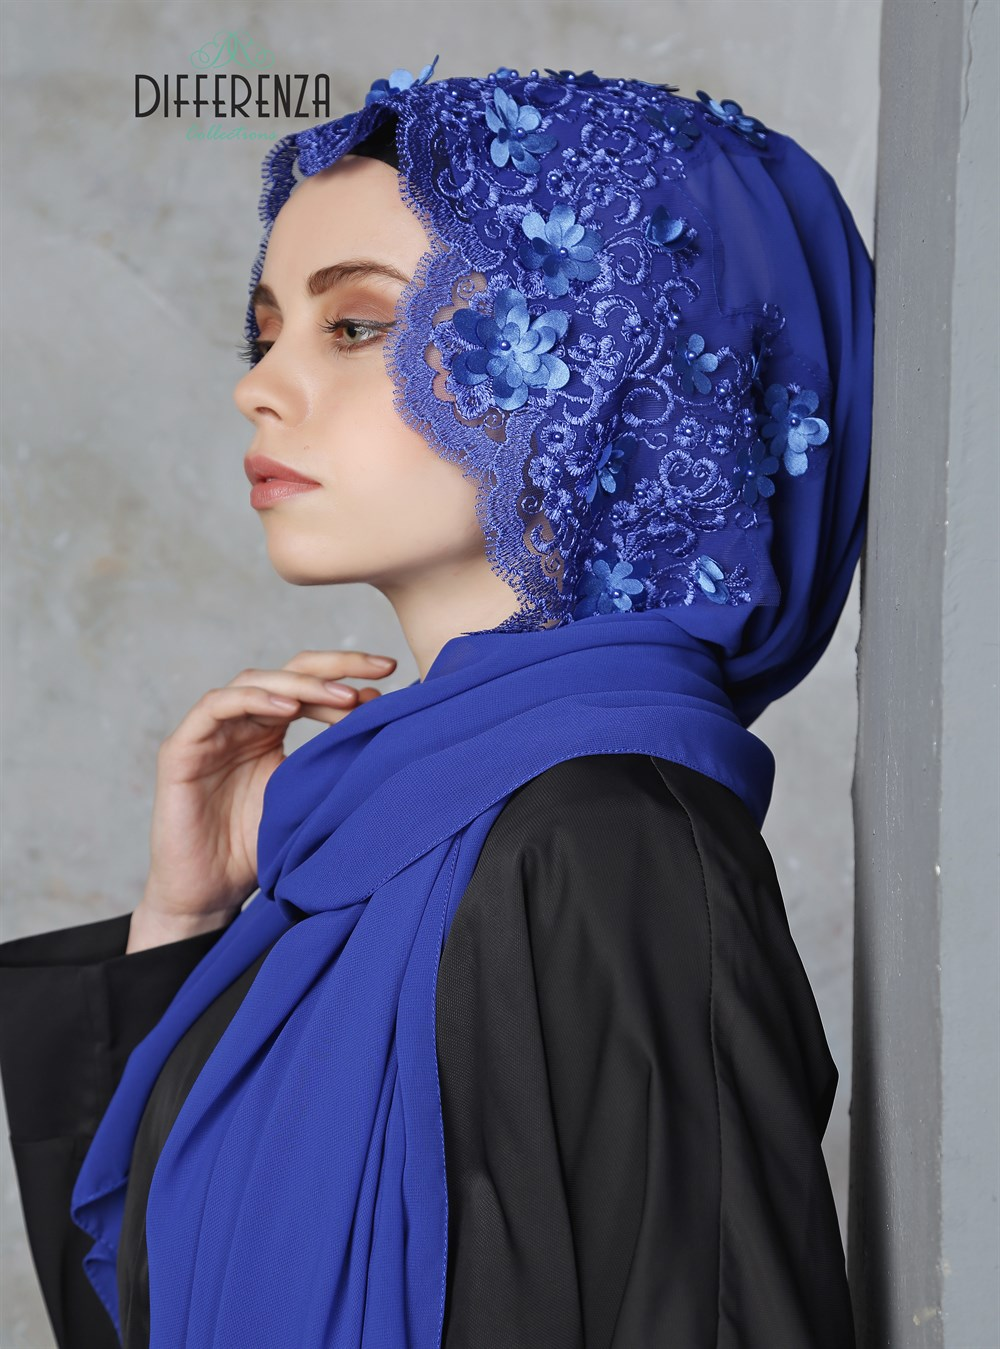 Hijab Turban Lace Haute  Couture Hand Made Special Design Differenza Muslim Women Clothing Islamic Fashion Turkey Wedding Gift haute couture ateliers the artisans of fashion